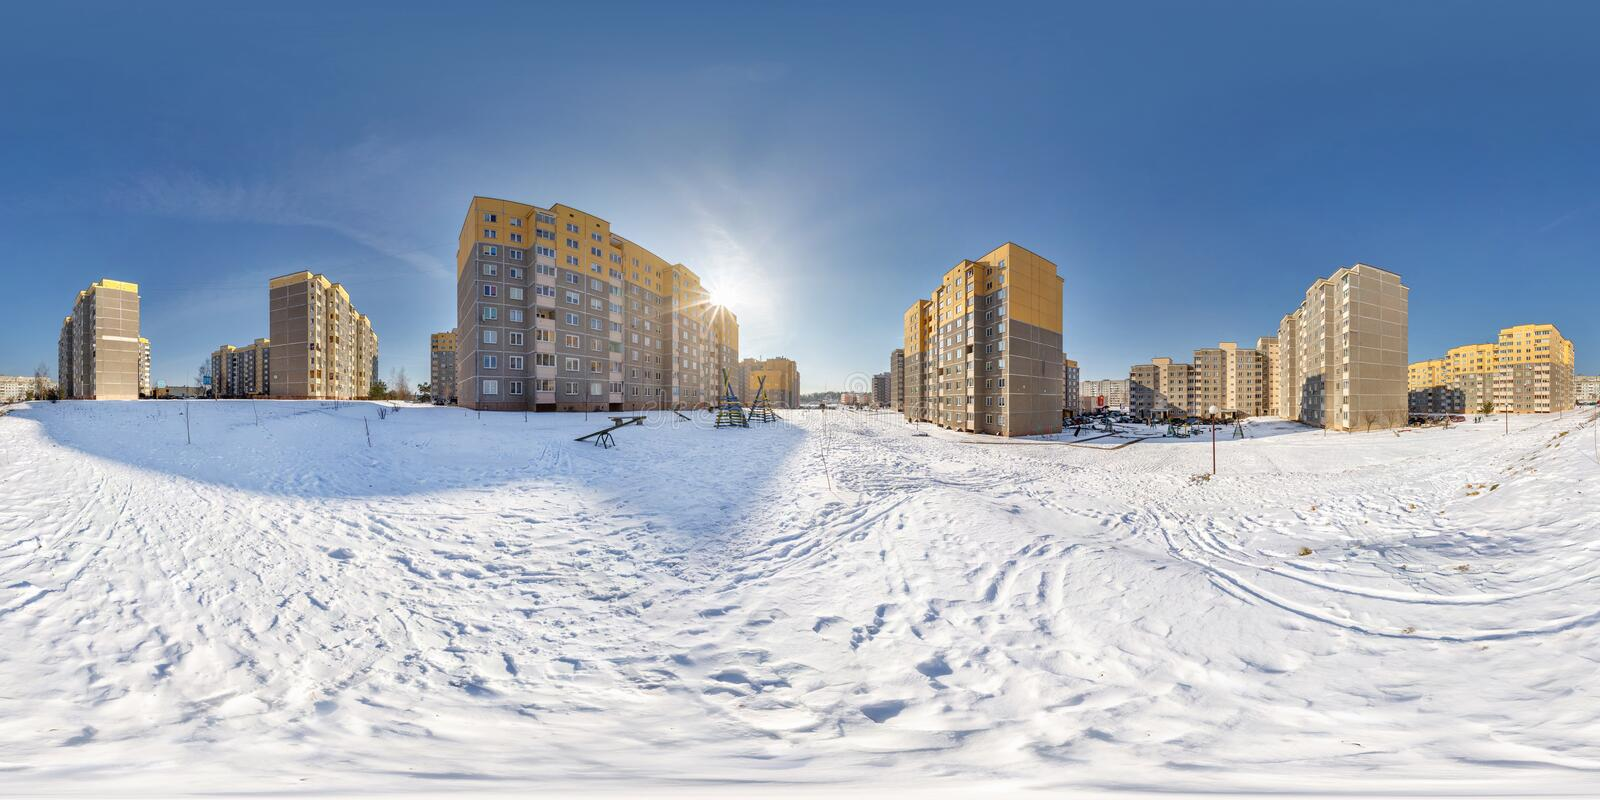 Full  seamless spherical panorama 360 degrees angle view in high-rise building area urban development residential quarter in royalty free stock photos